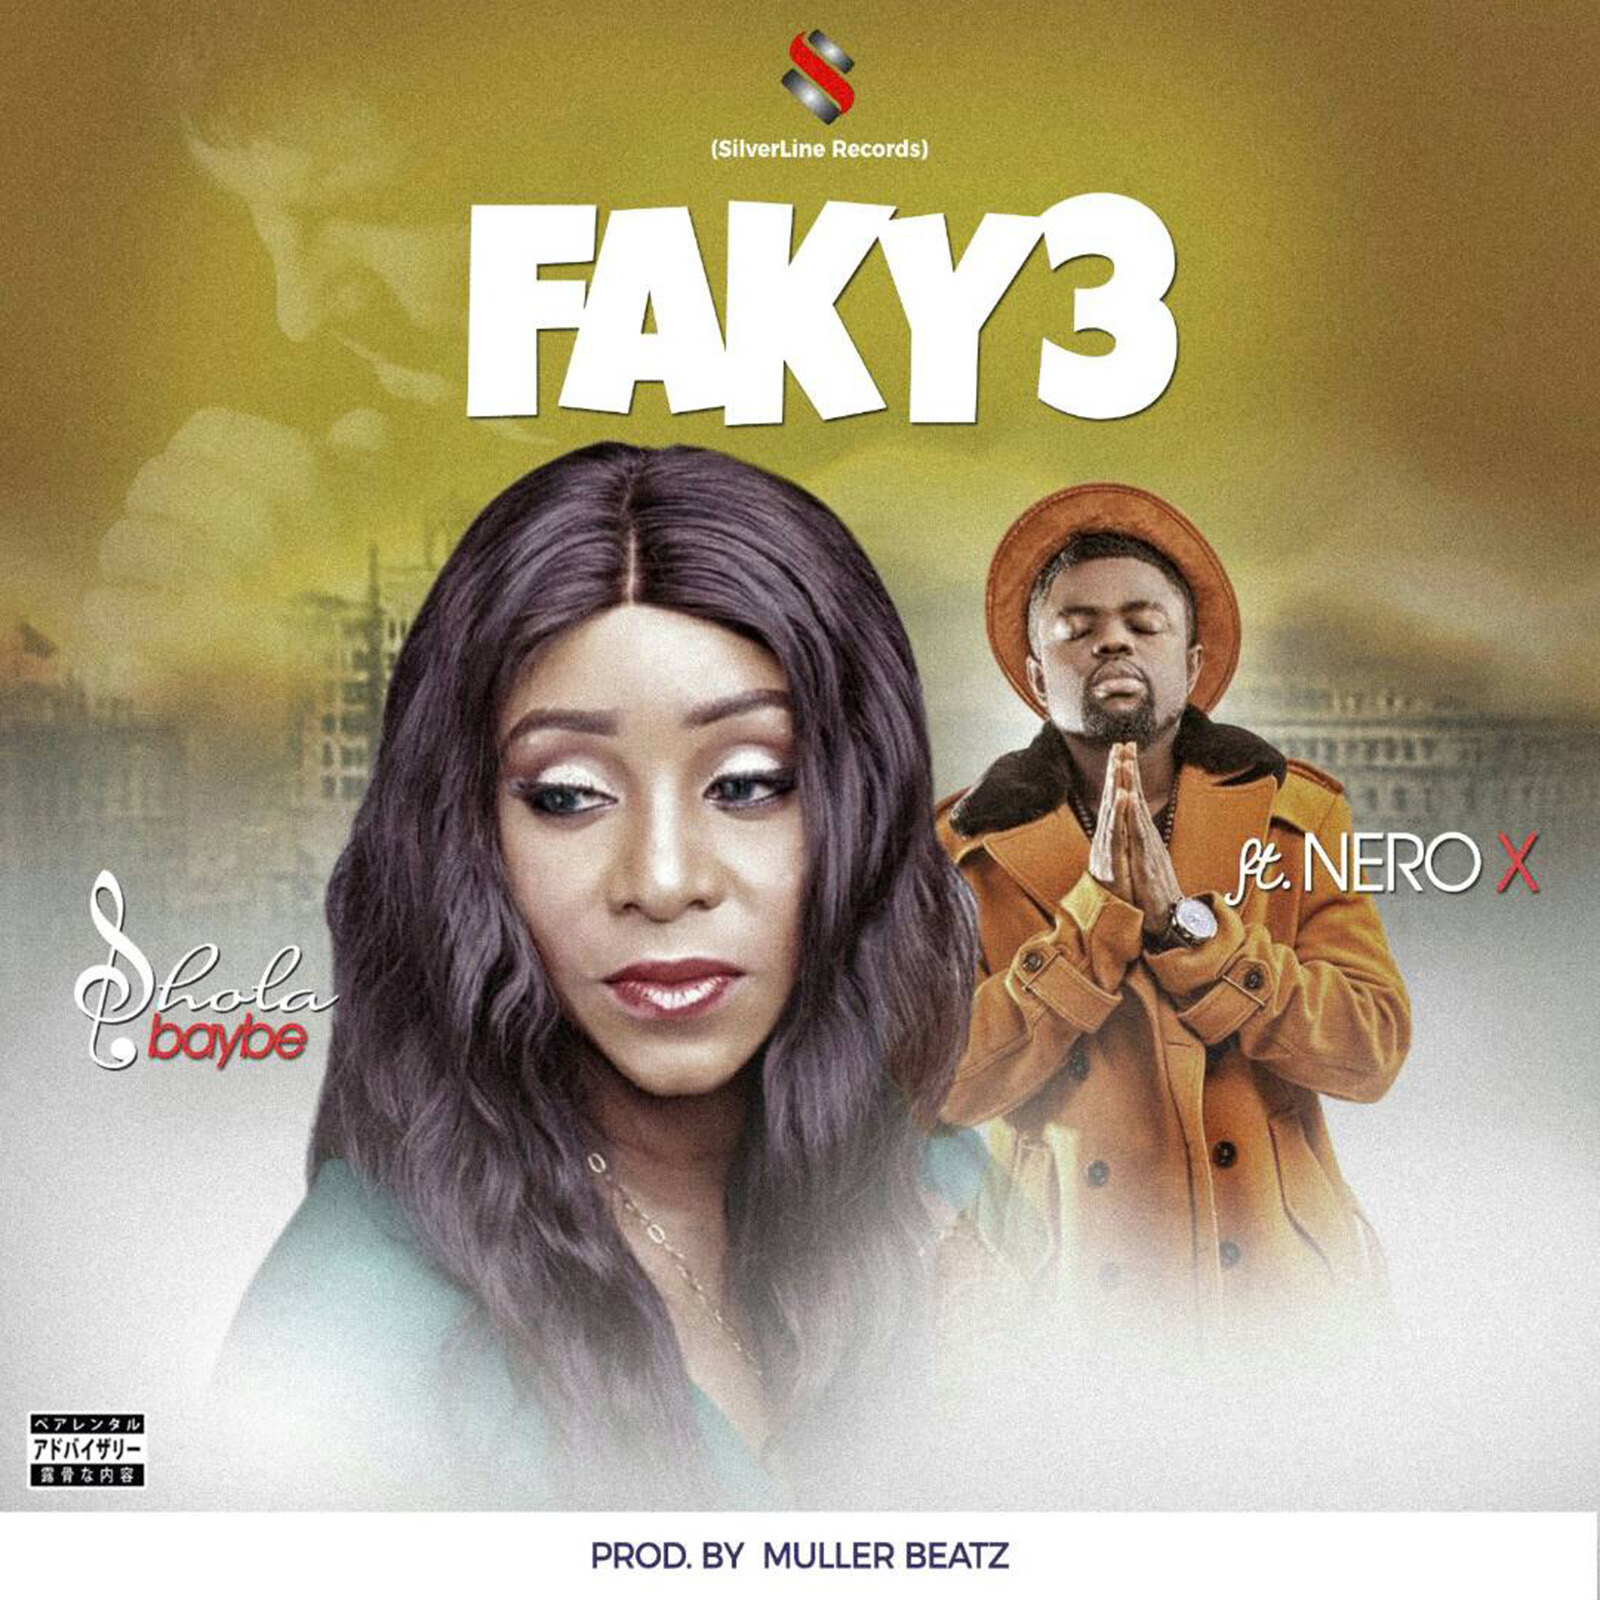 Faky3 by Shola Baybe feat. Nero X